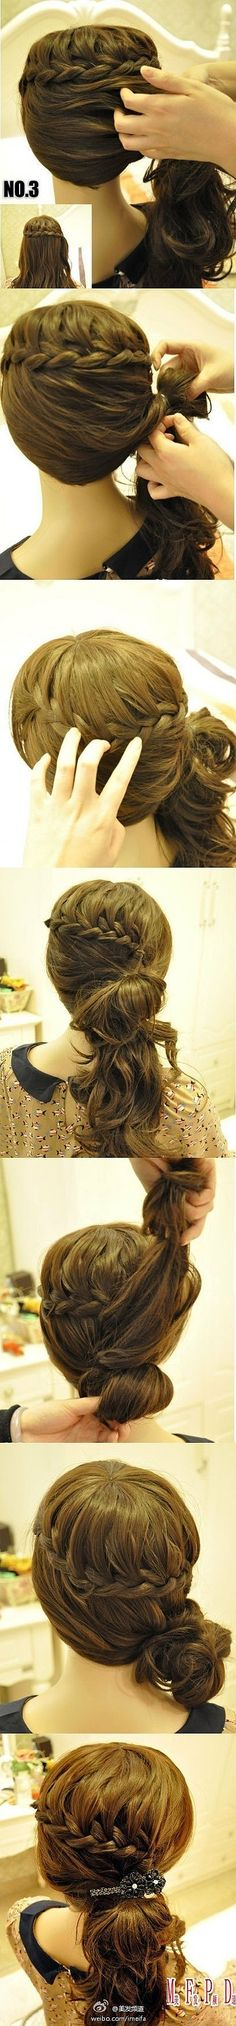 Messy braid GET LISTED TODAY! http://www.HairnewsNetwork.com  Hair News Network. All Hair. All The time.